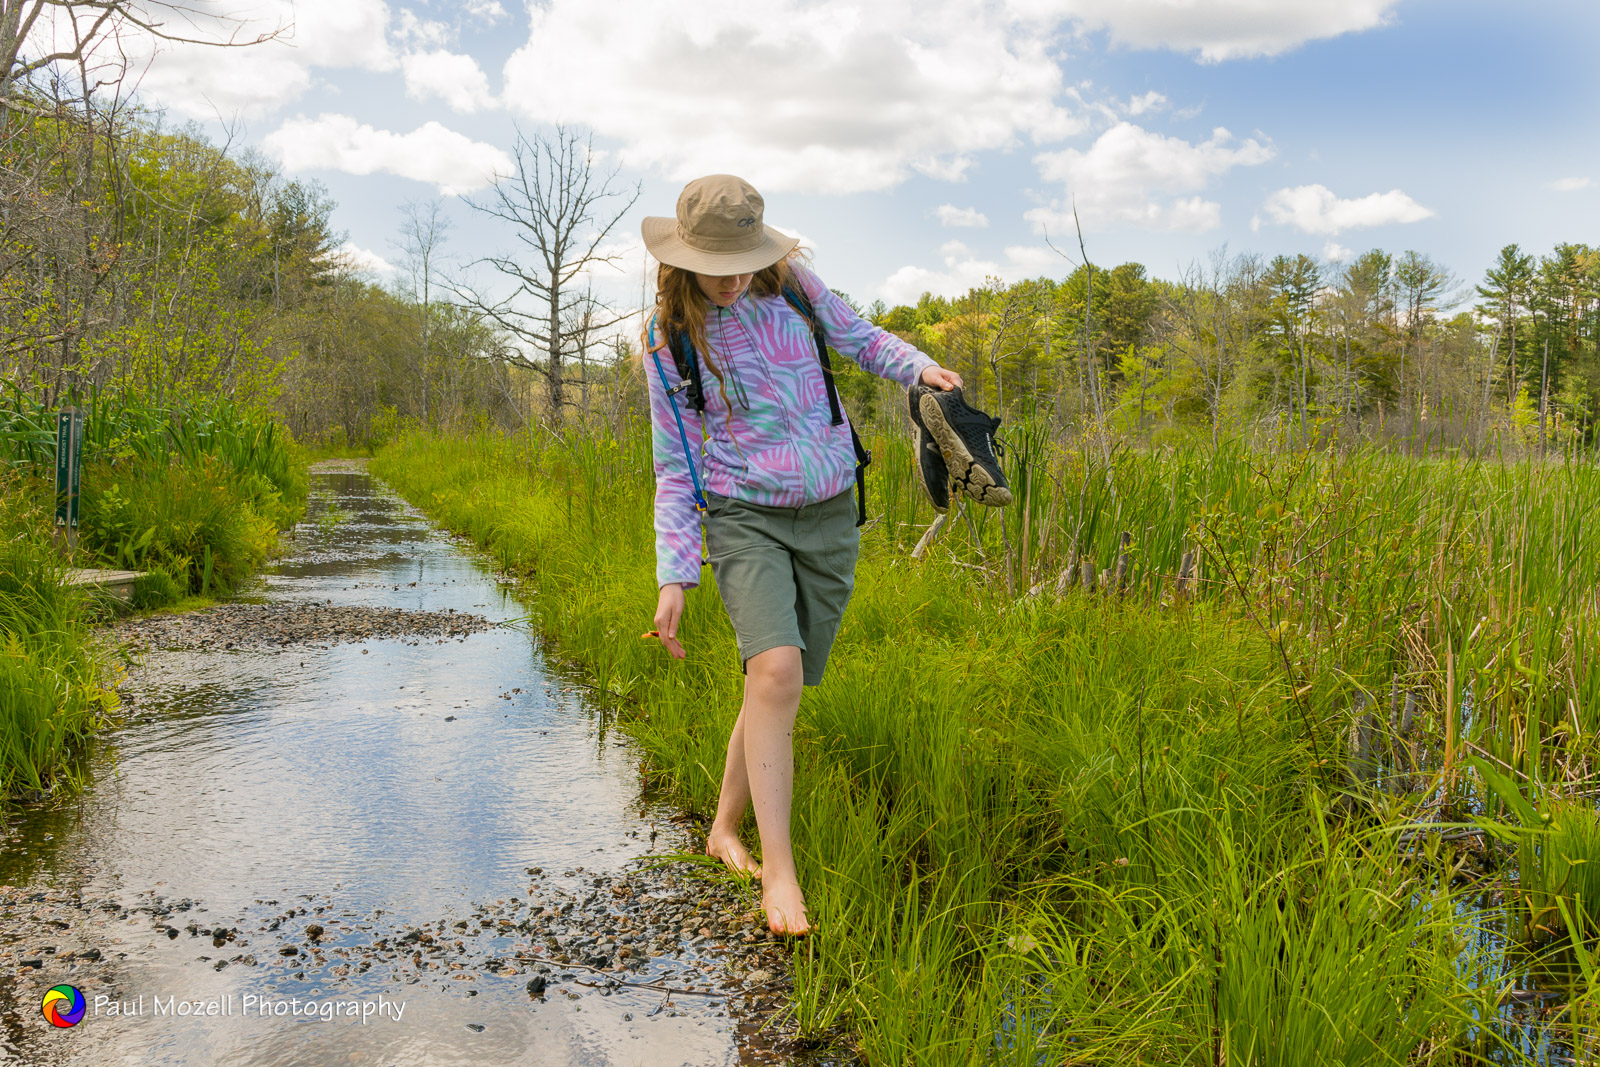 First good barefoot traverse of a flooded trail this spring.